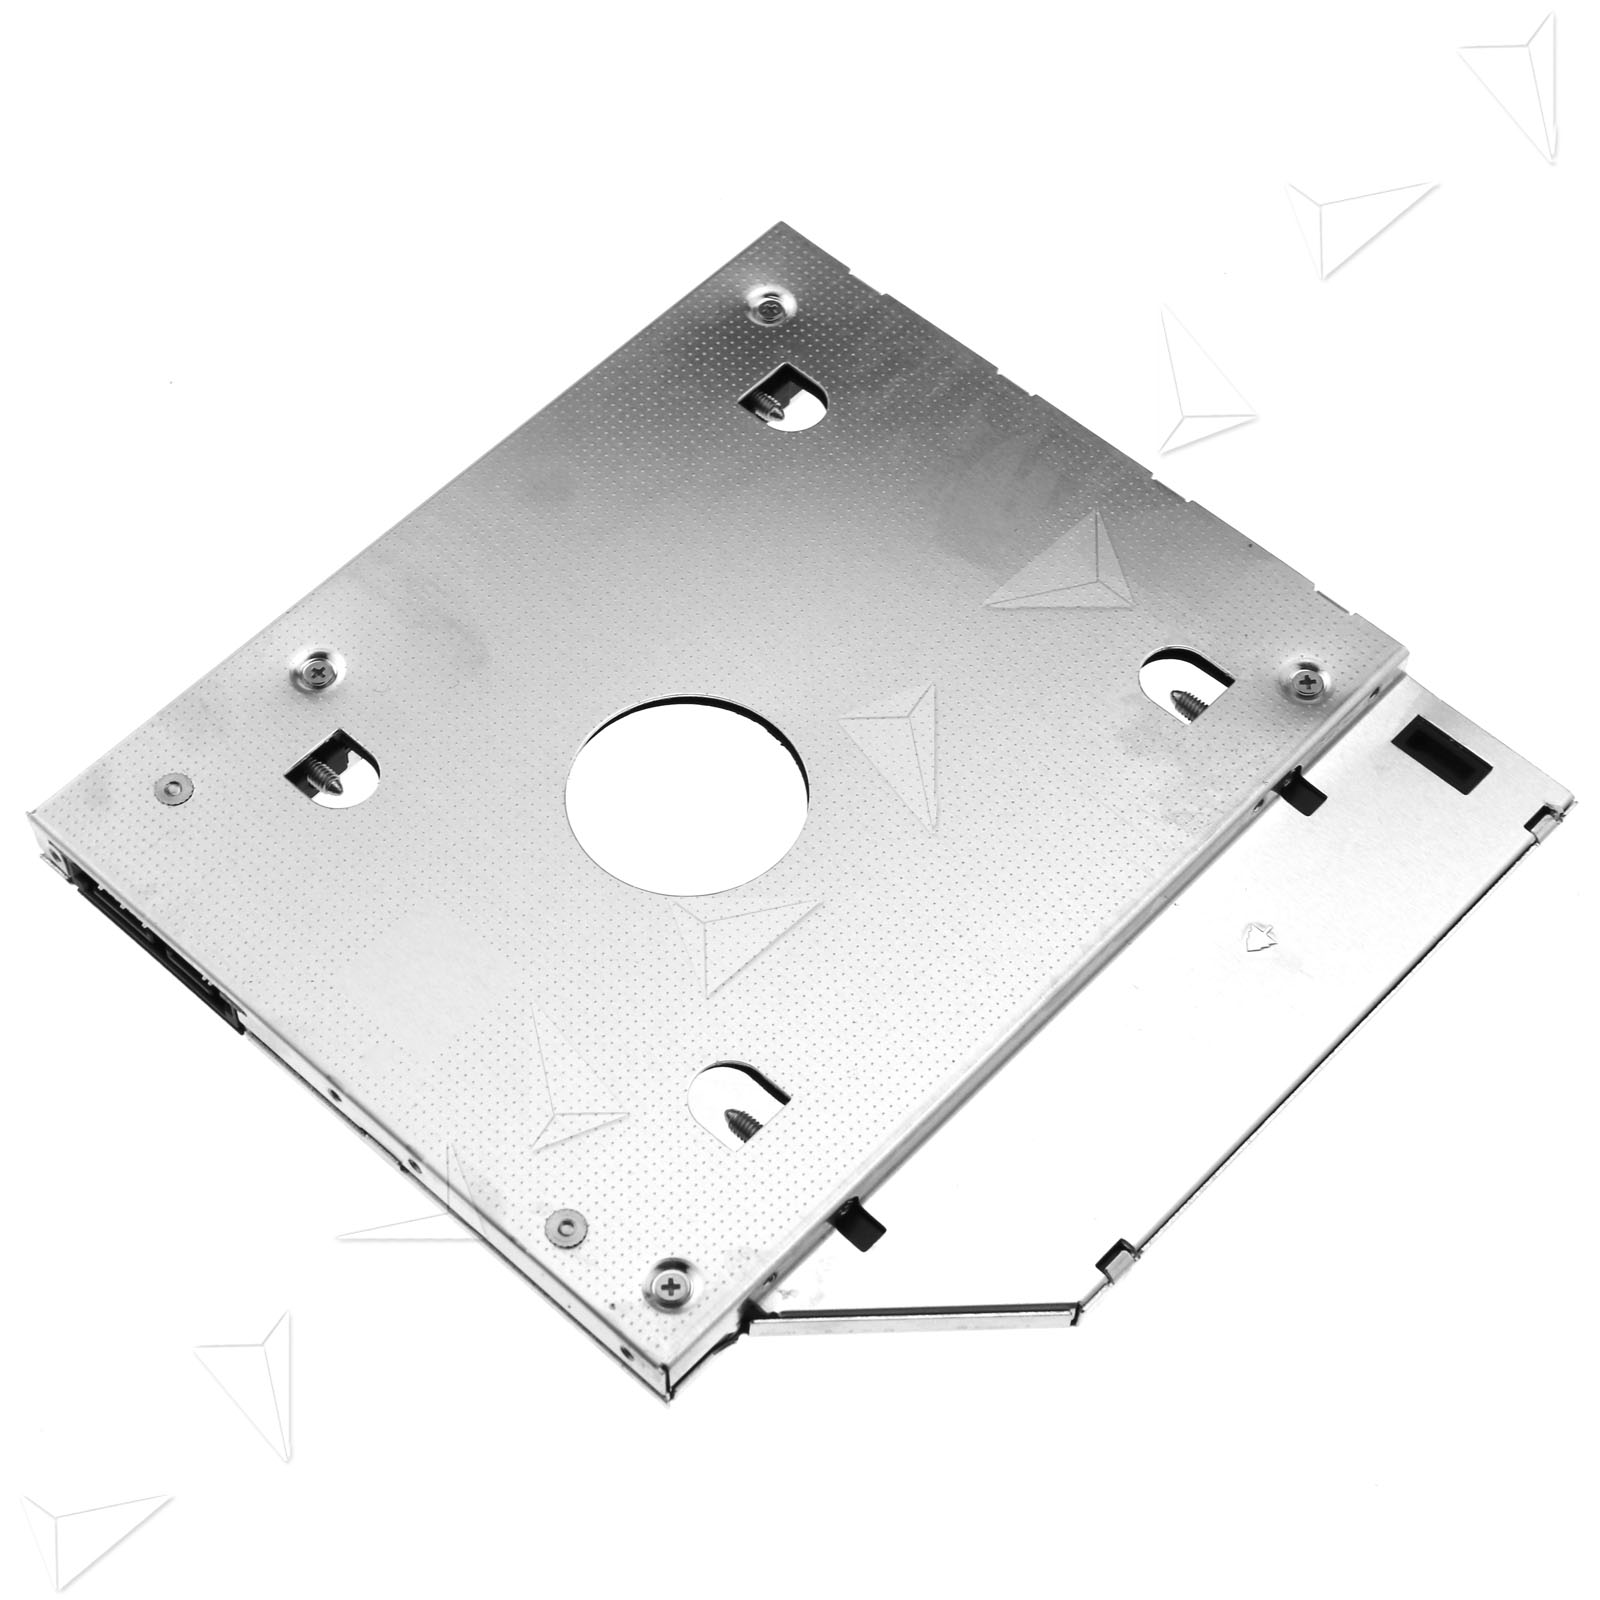 how to connect hard drive caddy